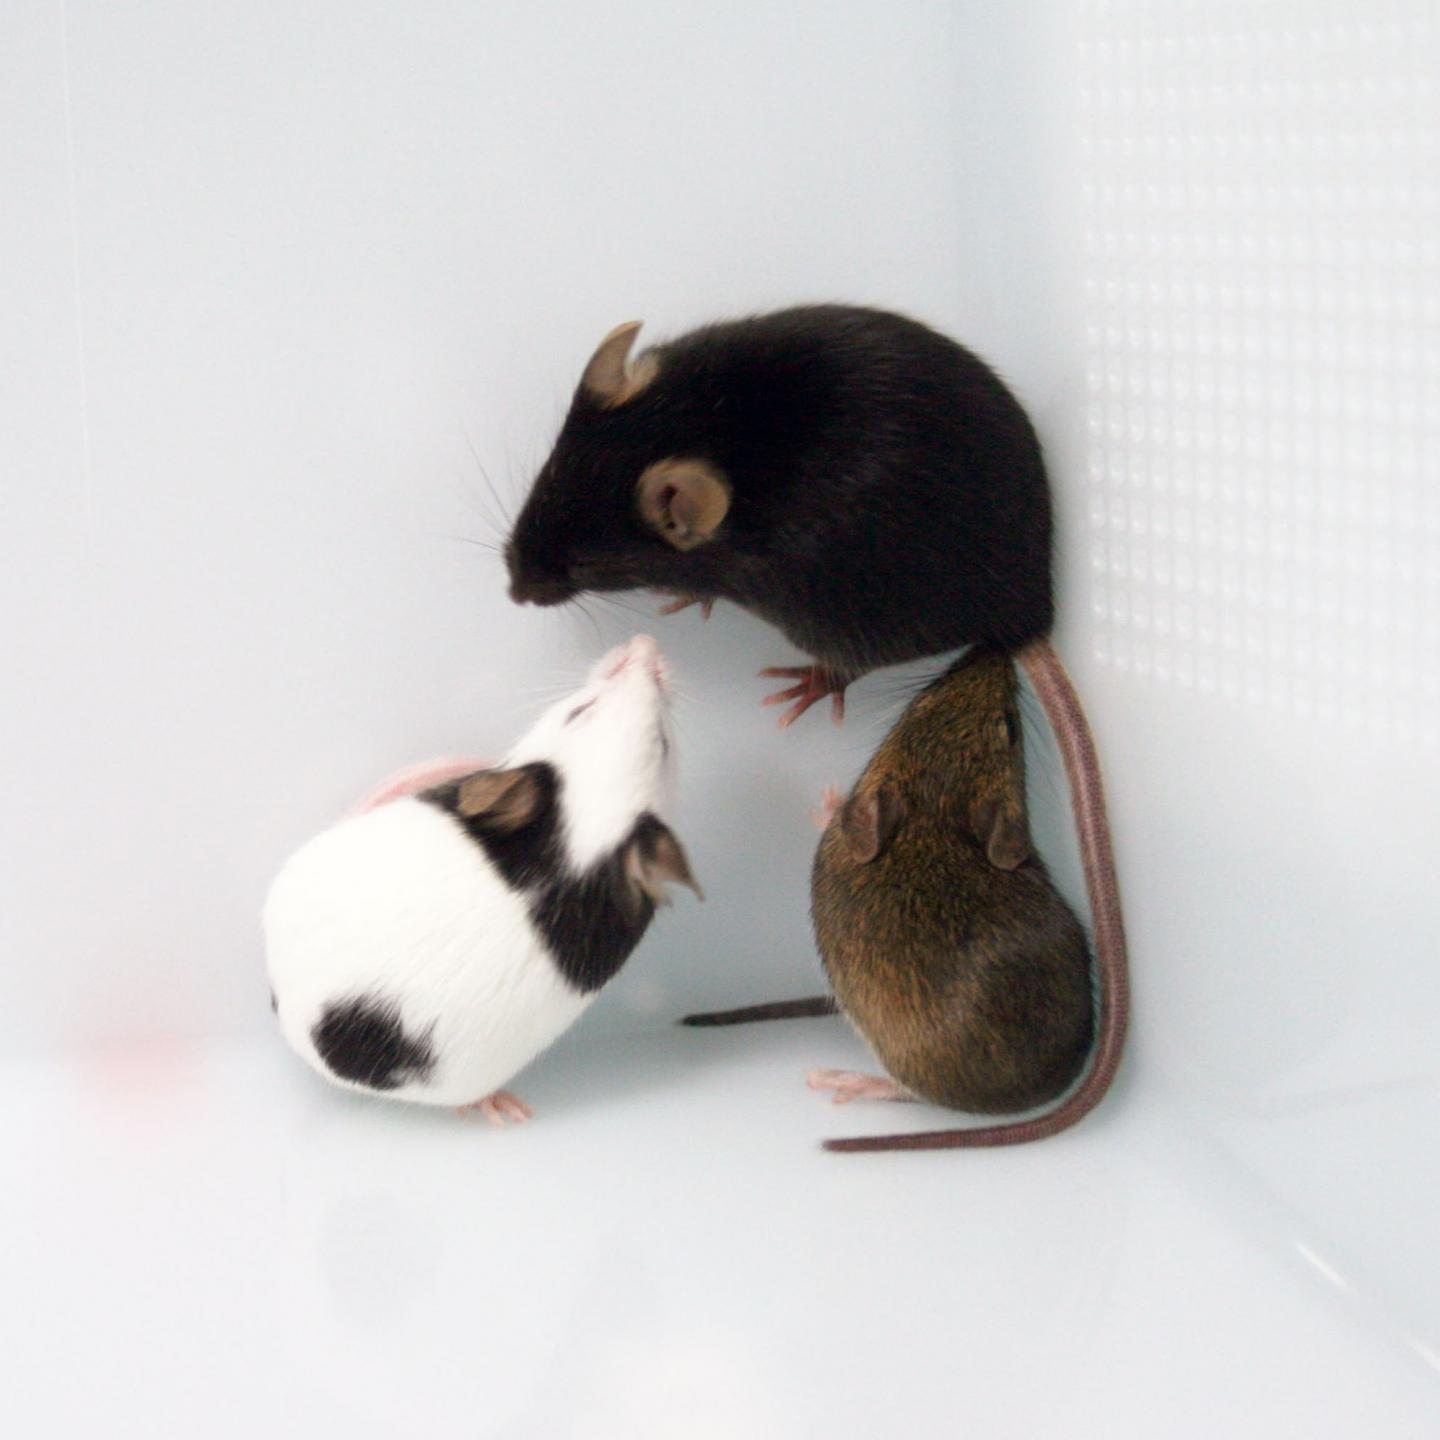 Mice Strains with Different Coat Colors